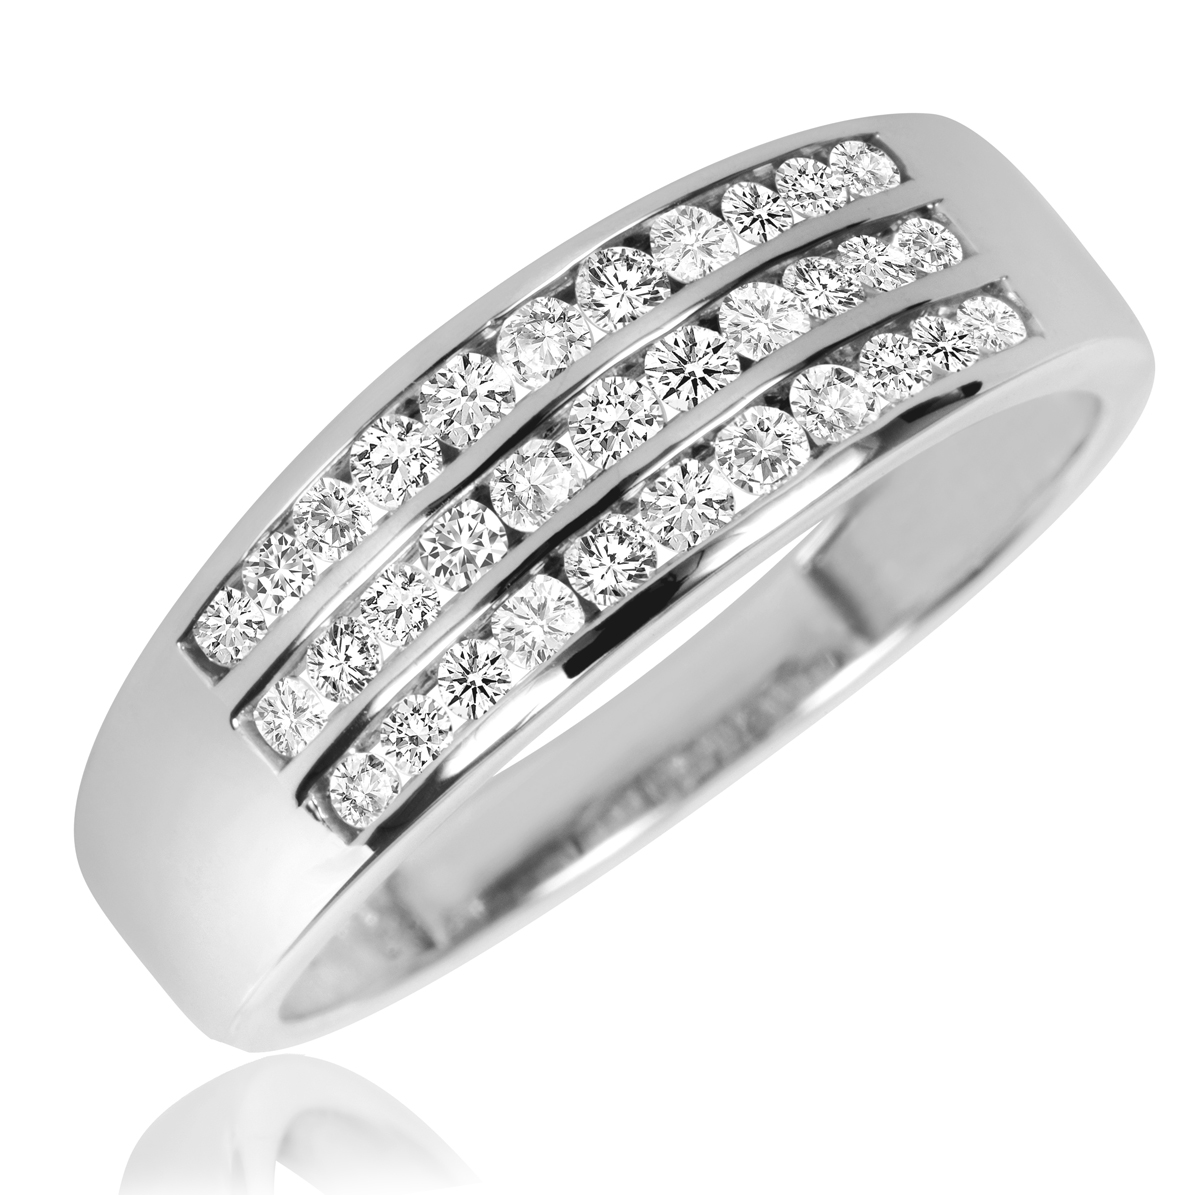 mens wedding band in 10kt white gold white gold wedding band Men s Wedding Band in 10kt White Gold